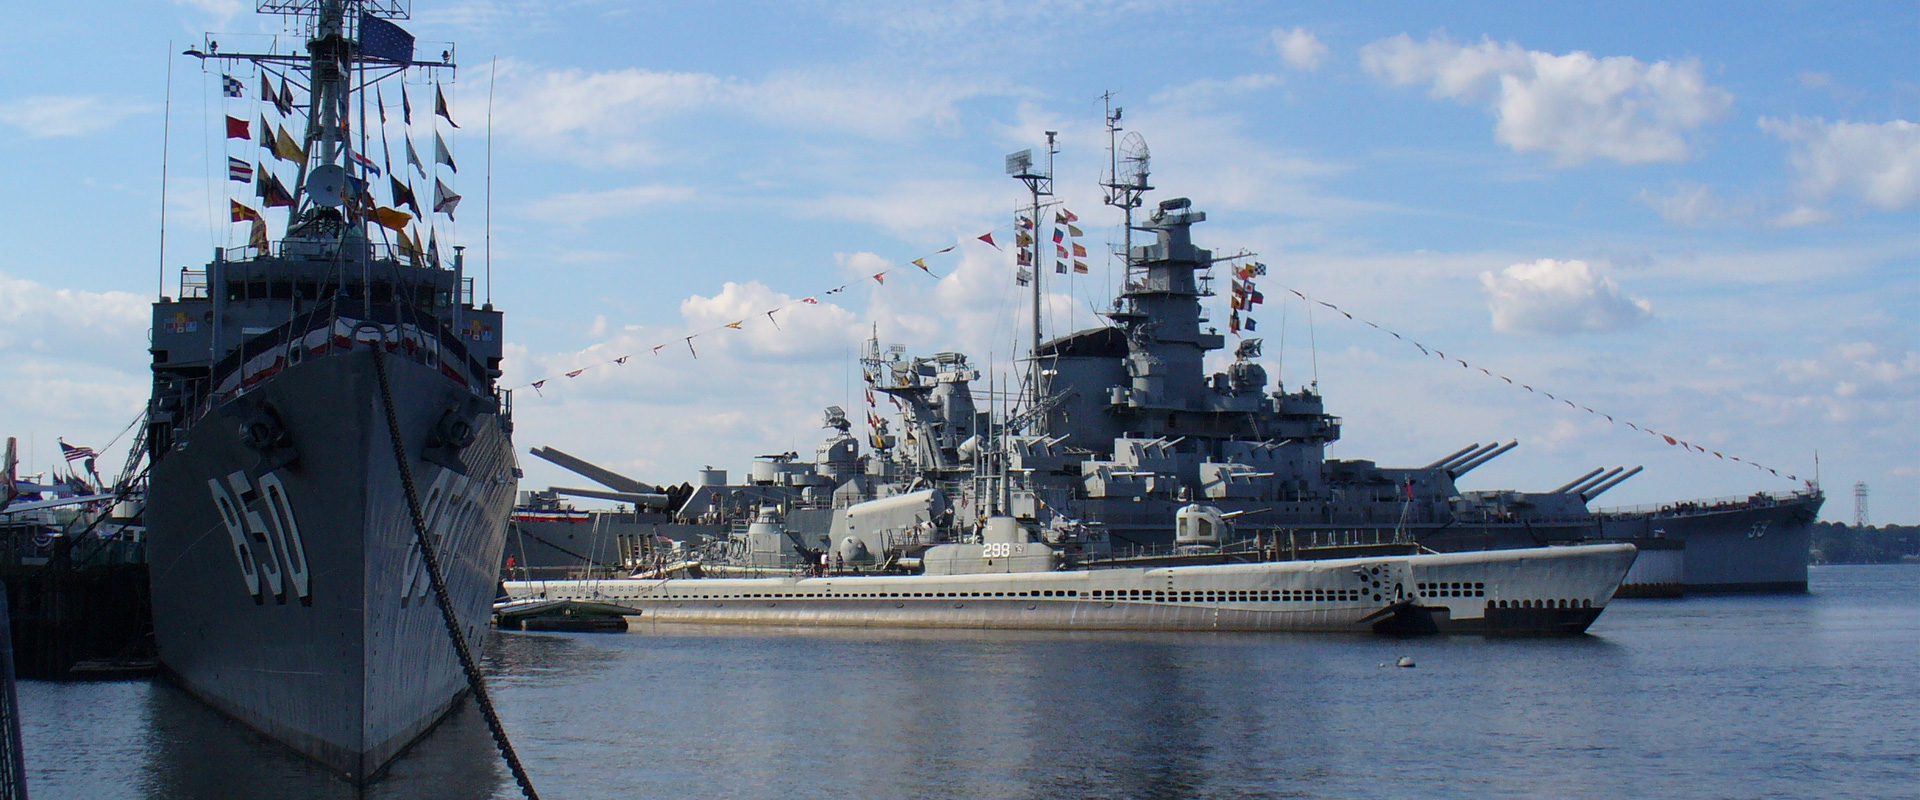 Battleship Cove is a nonprofit maritime museum and war memorial in Fall River, Massachusetts. Featuring the world's largest collection of World War II naval vessels, it is home to the highly decorated battleship USS Massachusetts